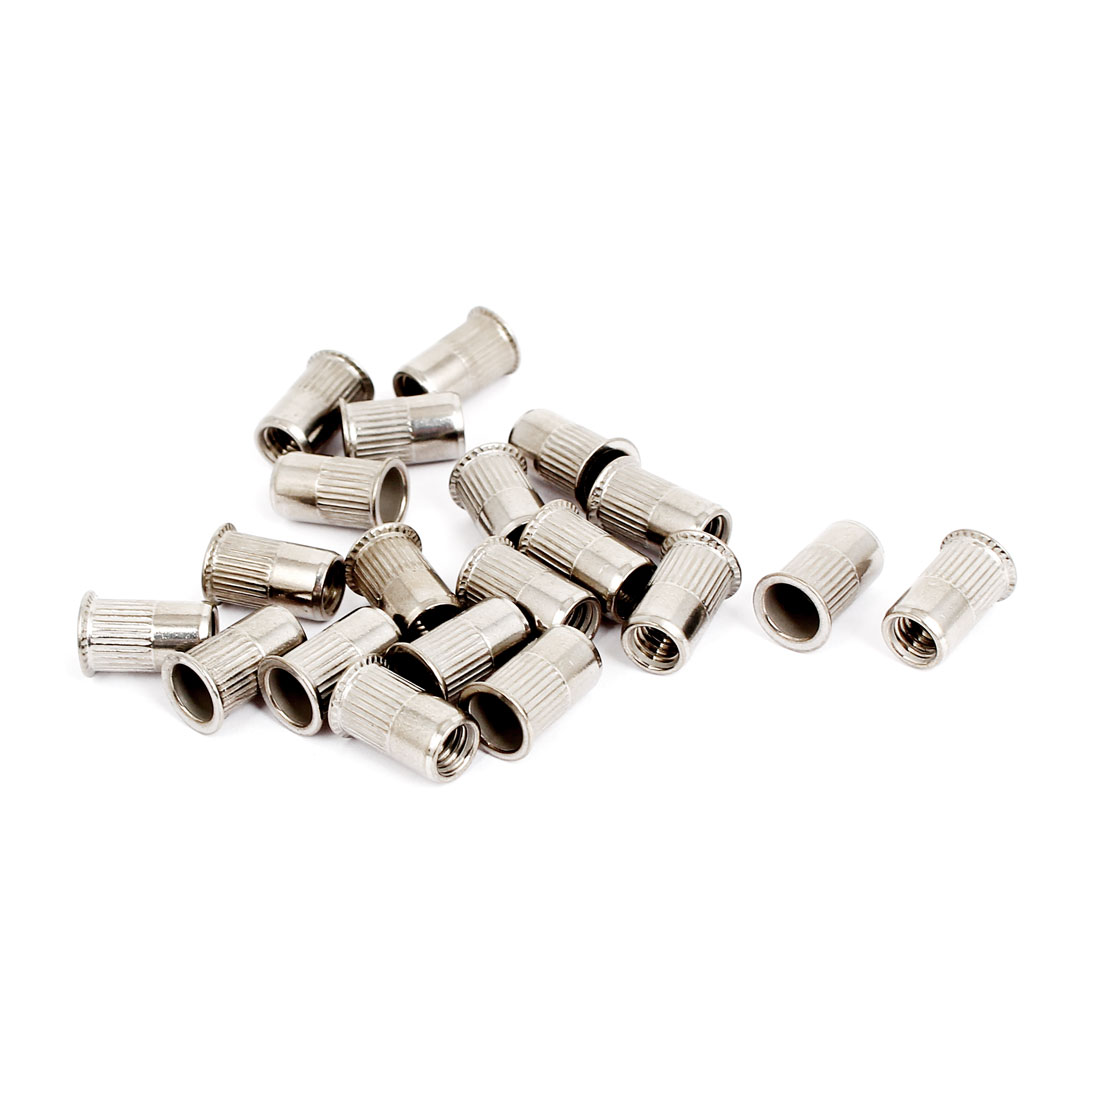 M5 Thread 304 Stainless Steel Rivet Nut Insert Nutsert 20pcs